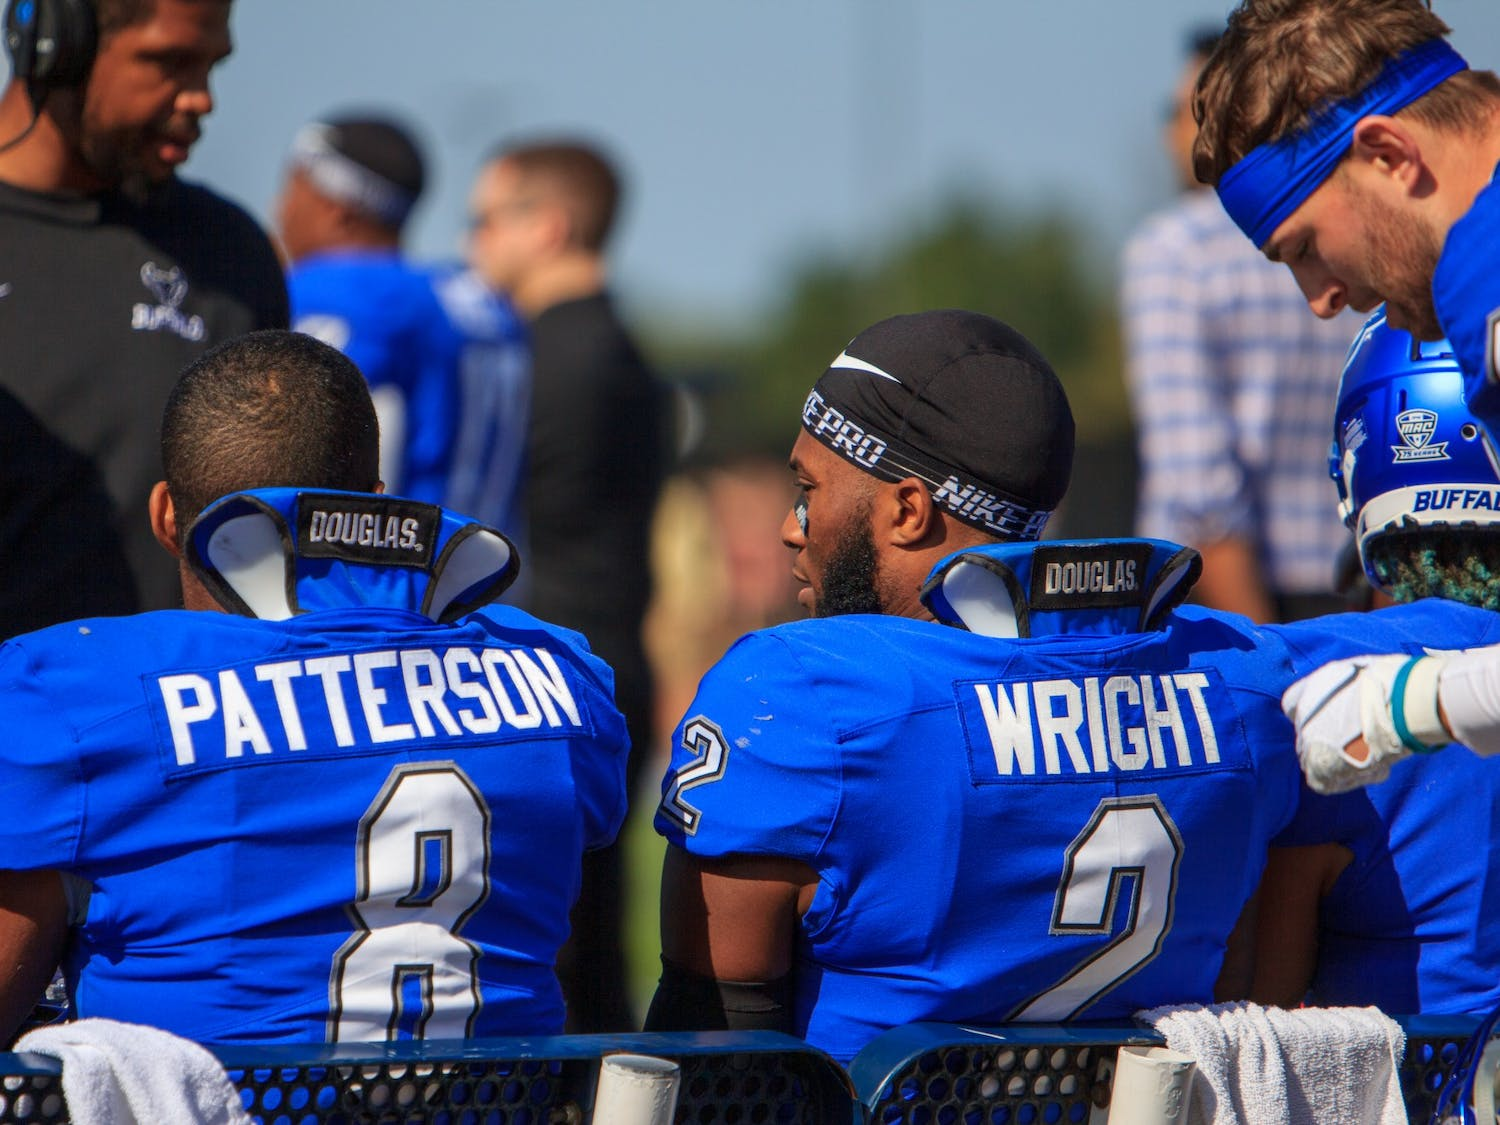 UB linebackers James Patterson (8) and Kadofi Wright (2) have different personalities and playing styles, but they are both forces on the field for the Bulls.